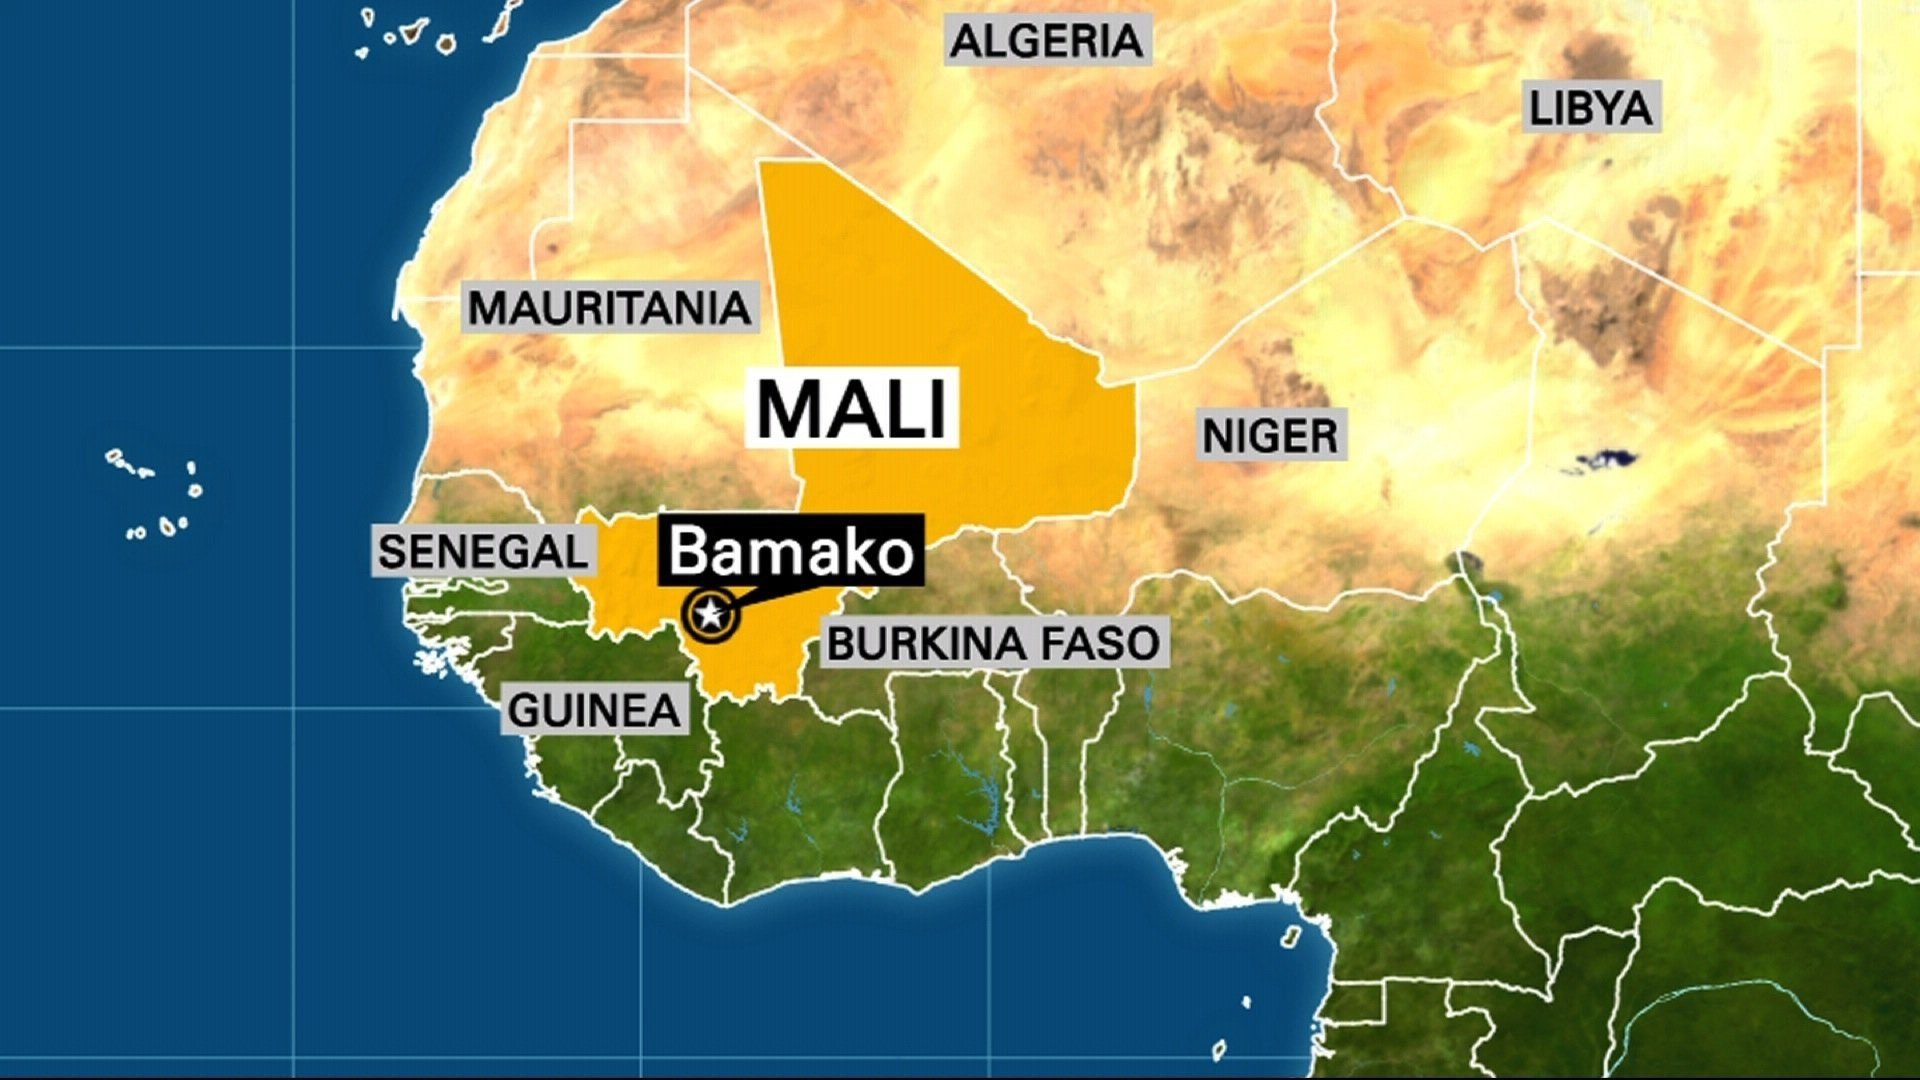 "A luxury resort popular with Westerners near Mali's capital city of Bamako was under attack Sunday, the US State Department said. ""Ongoing attack at Hotel Kangaba ""Le Campement"" 30 min southeast of #Bamako, #Mali,"" the department tweeted, warning..."